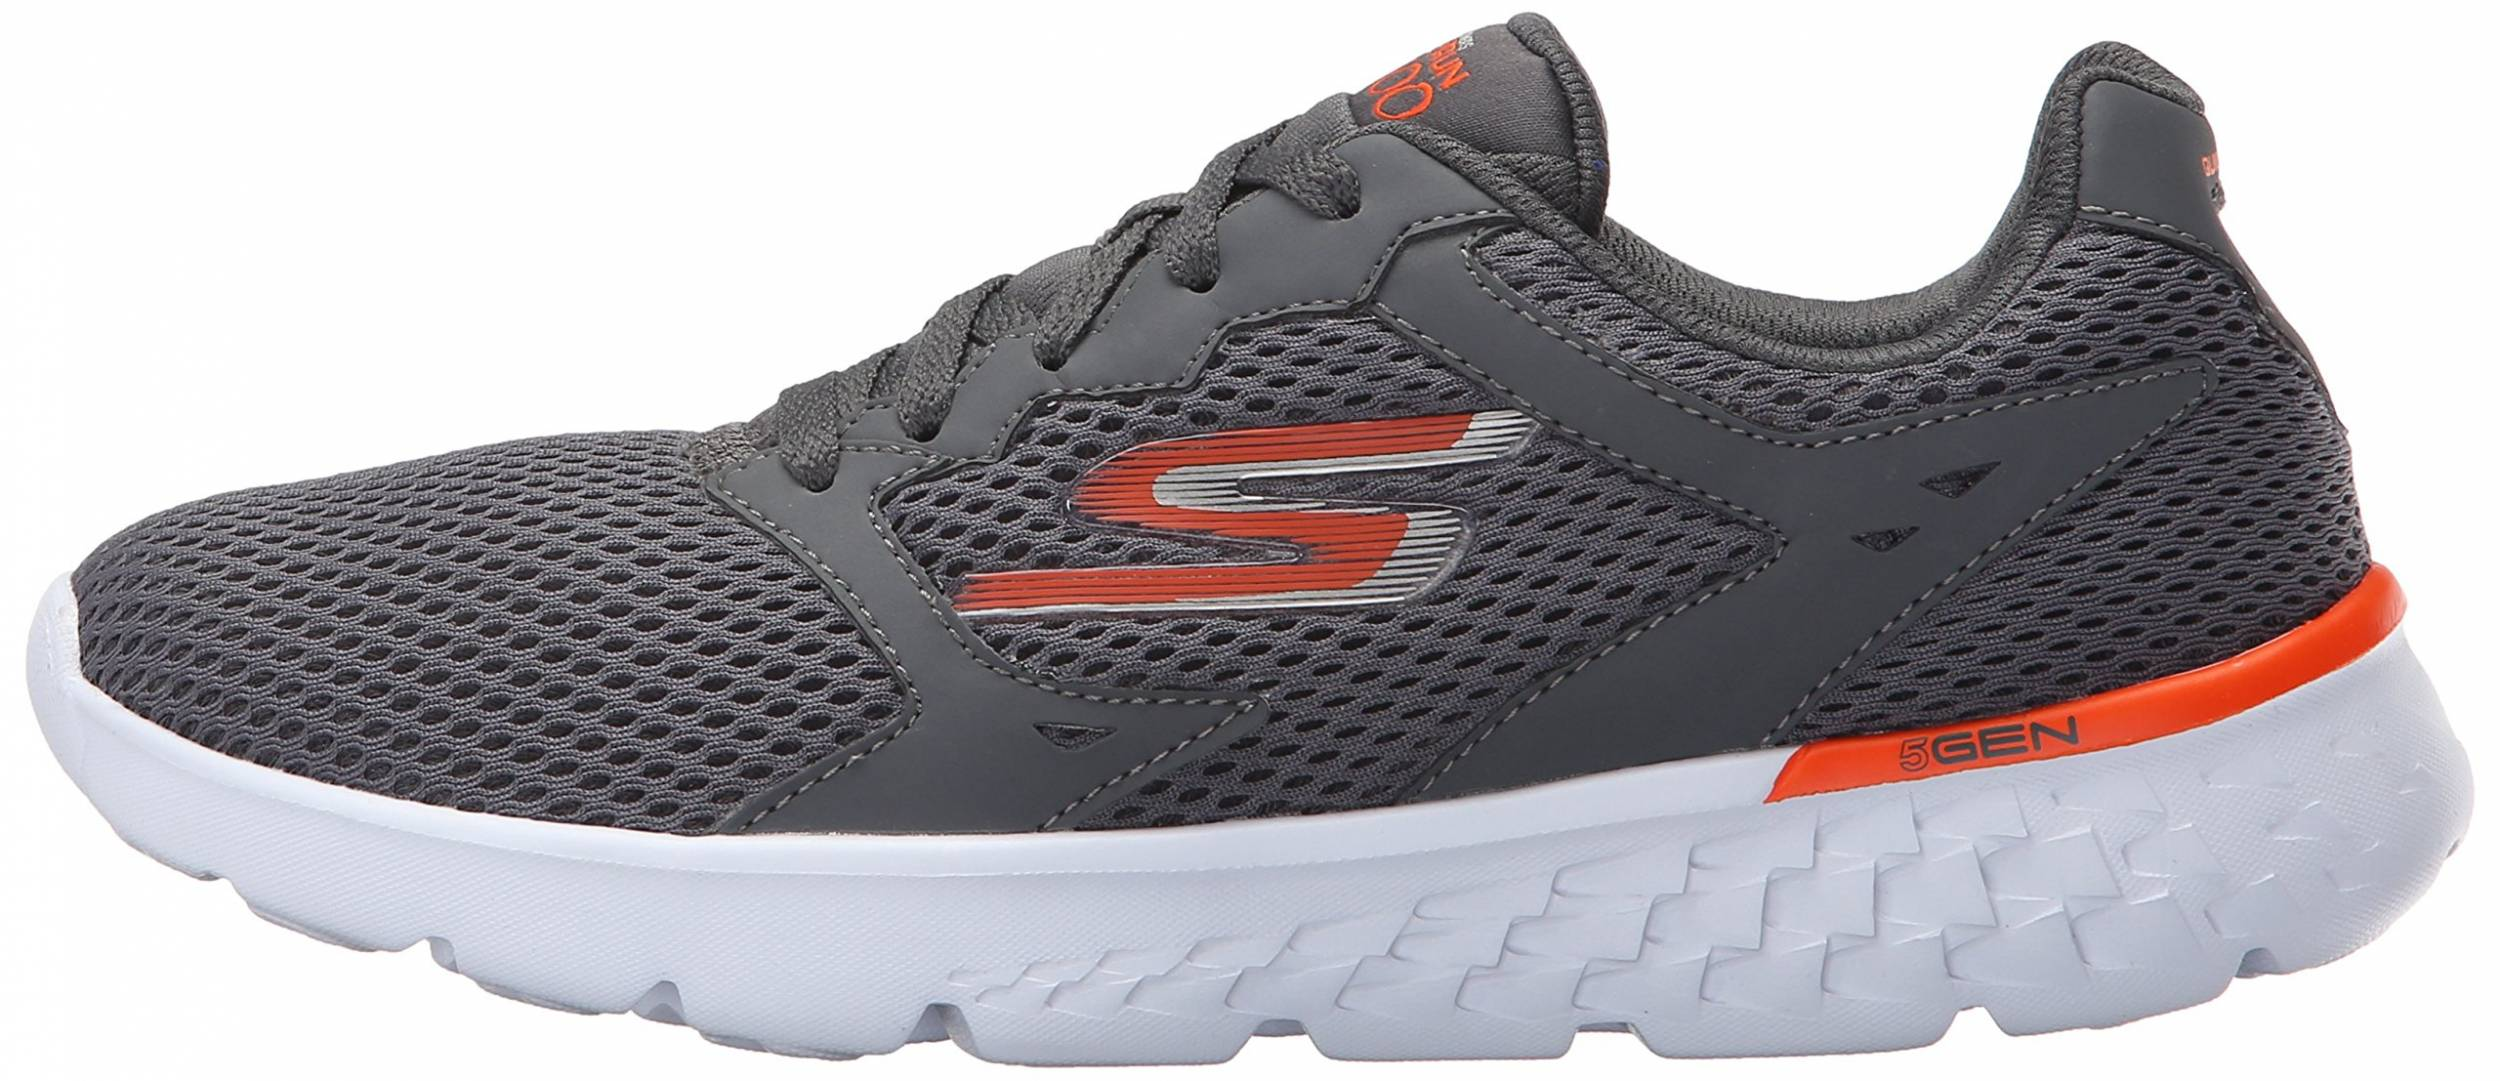 acidez Plantación Colector  Save 50% on Skechers Running Shoes (57 Models in Stock) | RunRepeat